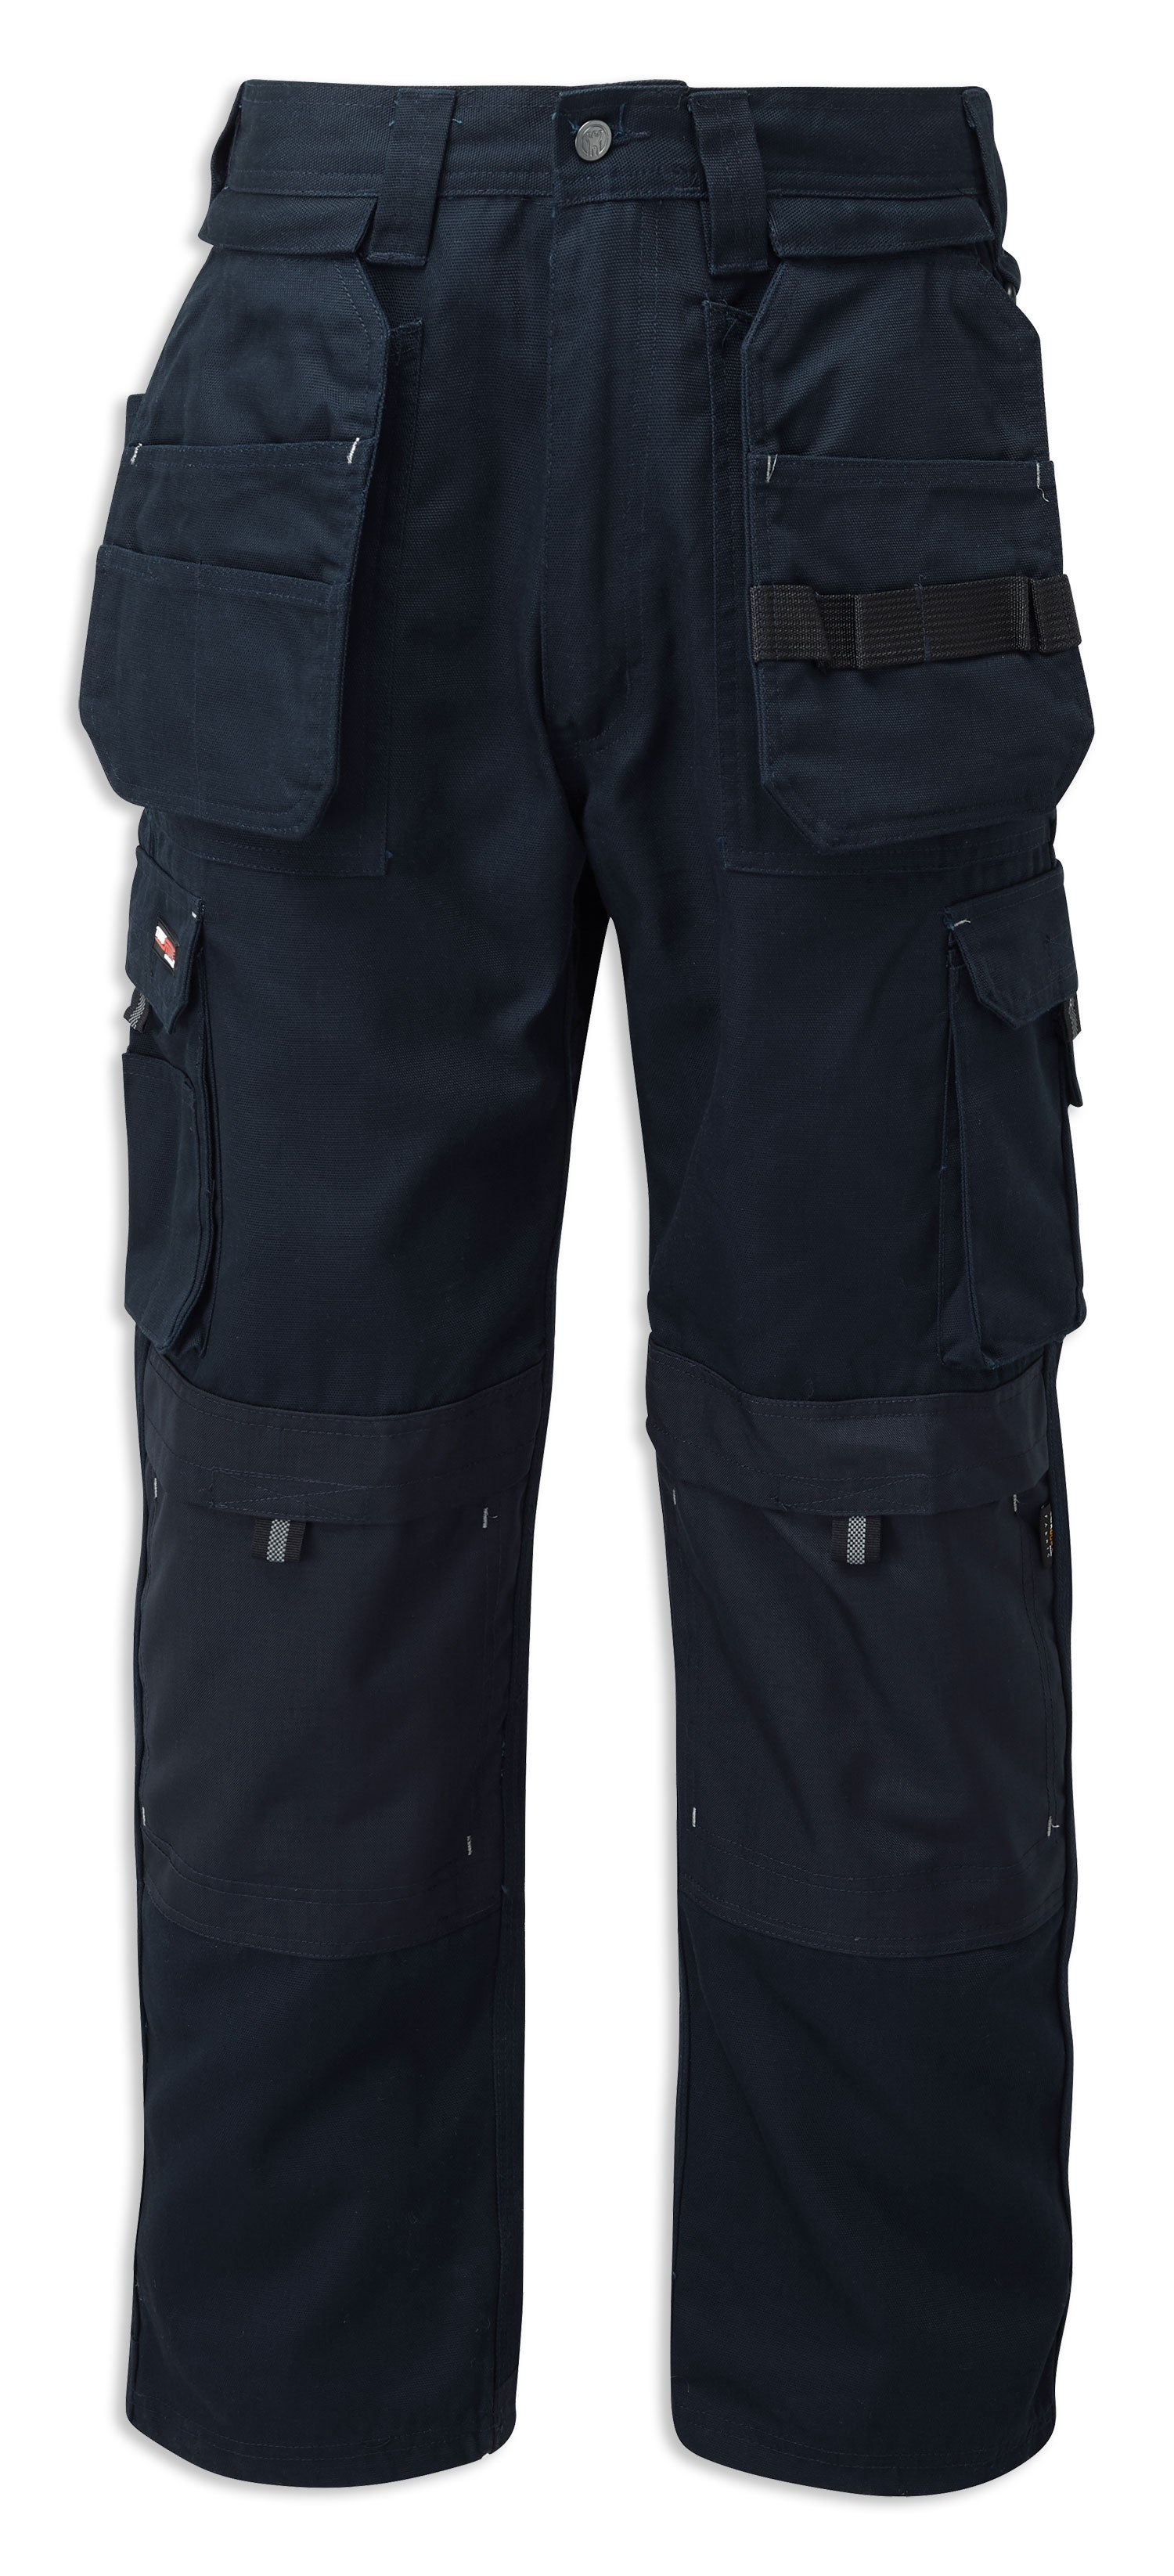 Navy Castle Tuffstuff Extreme Work Trousers